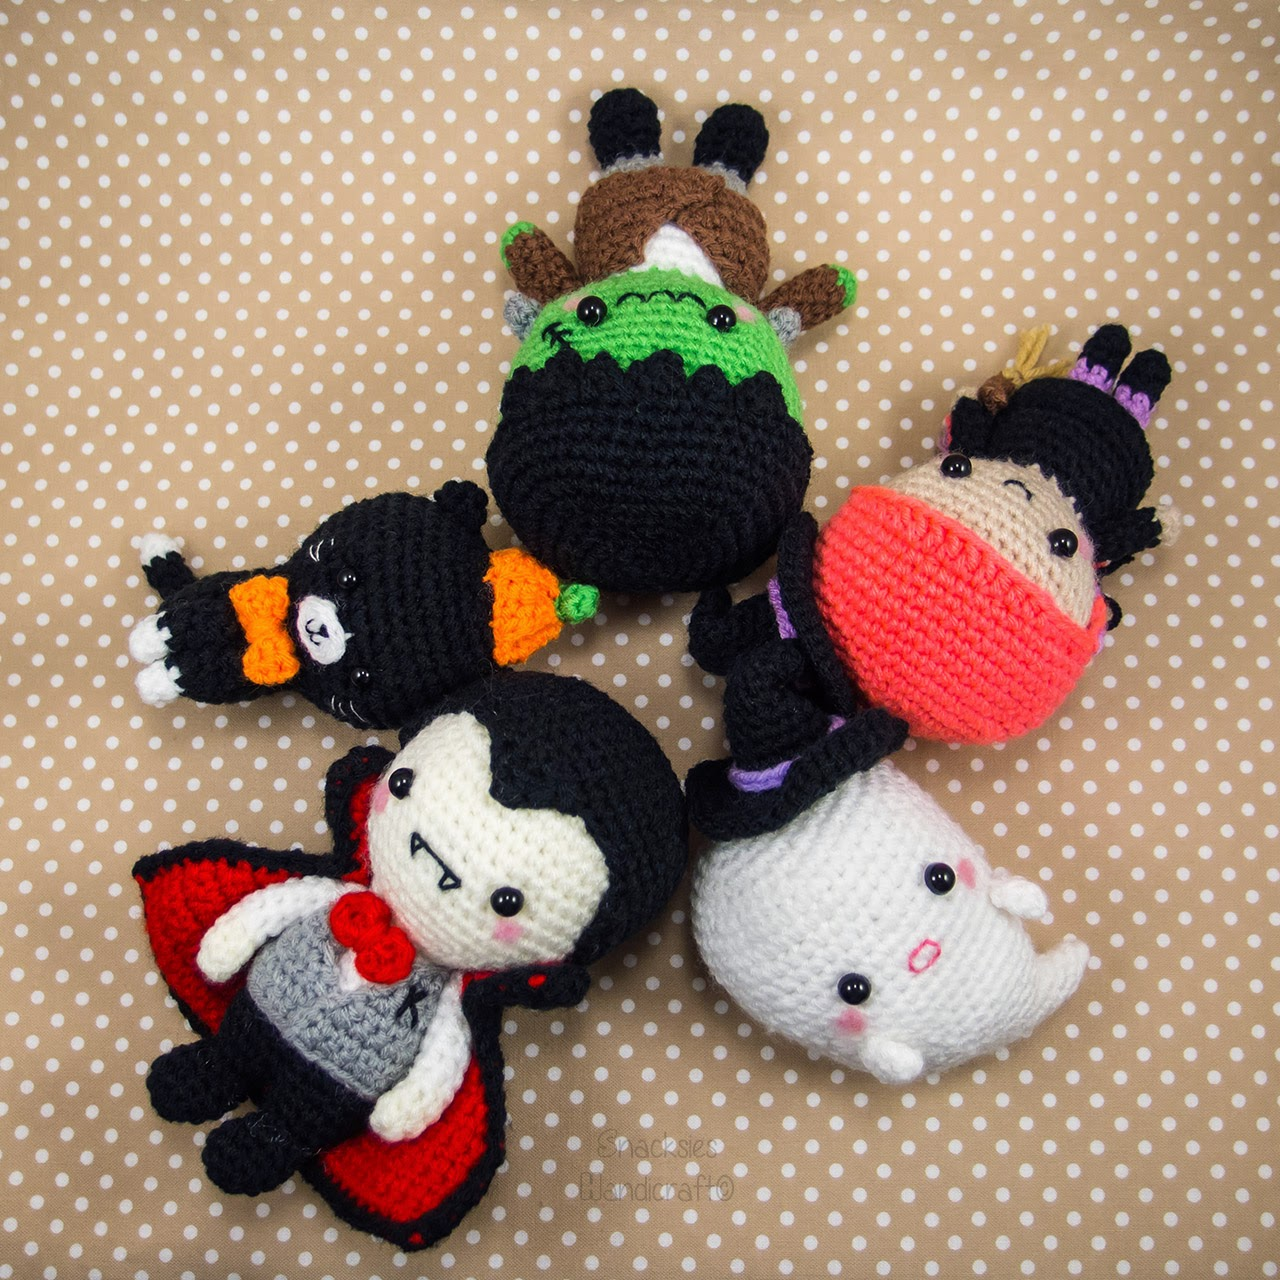 Free Crochet Patterns For Halloween : Halloween Set Patterns and Made-to-order ~ Snacksies ...